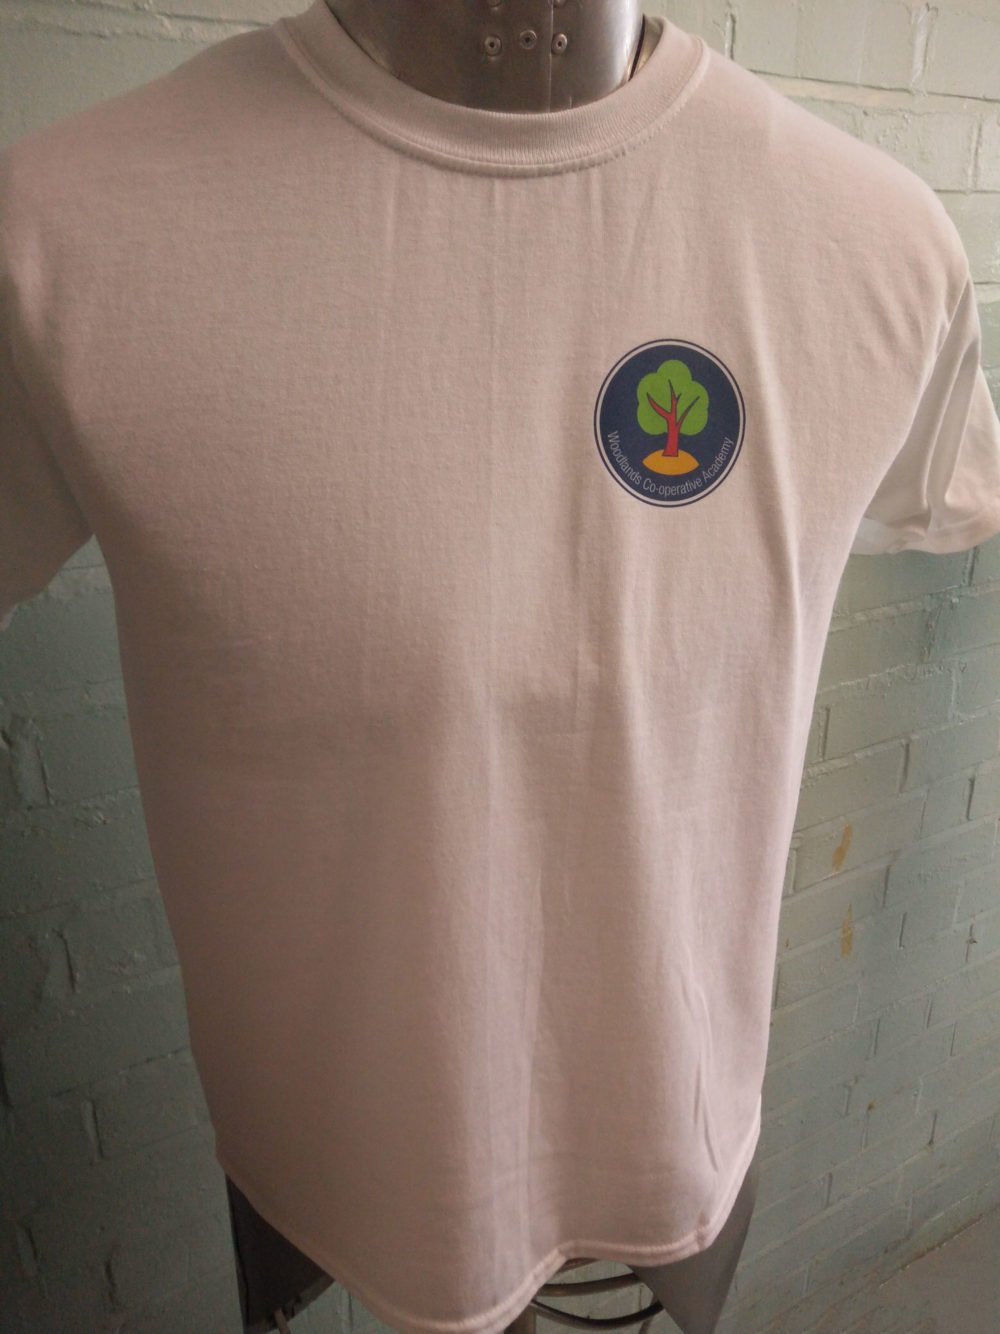 Woodlands Co-Op Academy Leavers 2017 T-Shirts